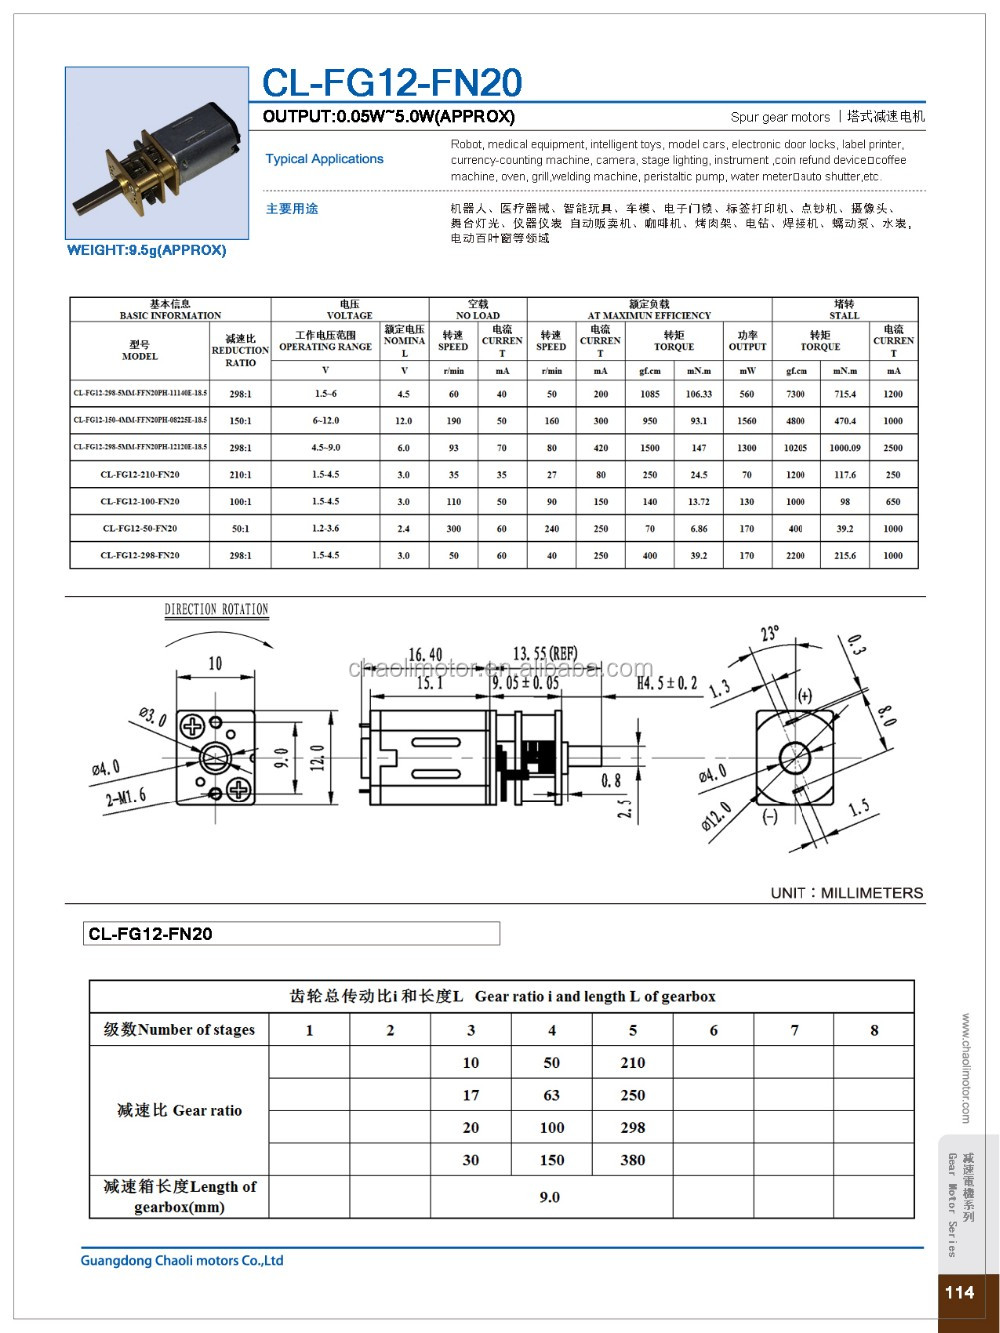 China 12mm spur geared motor CL-FG12-FN20 with 12*10 metal gearbox for electronic door lock and robot-chaoli2016